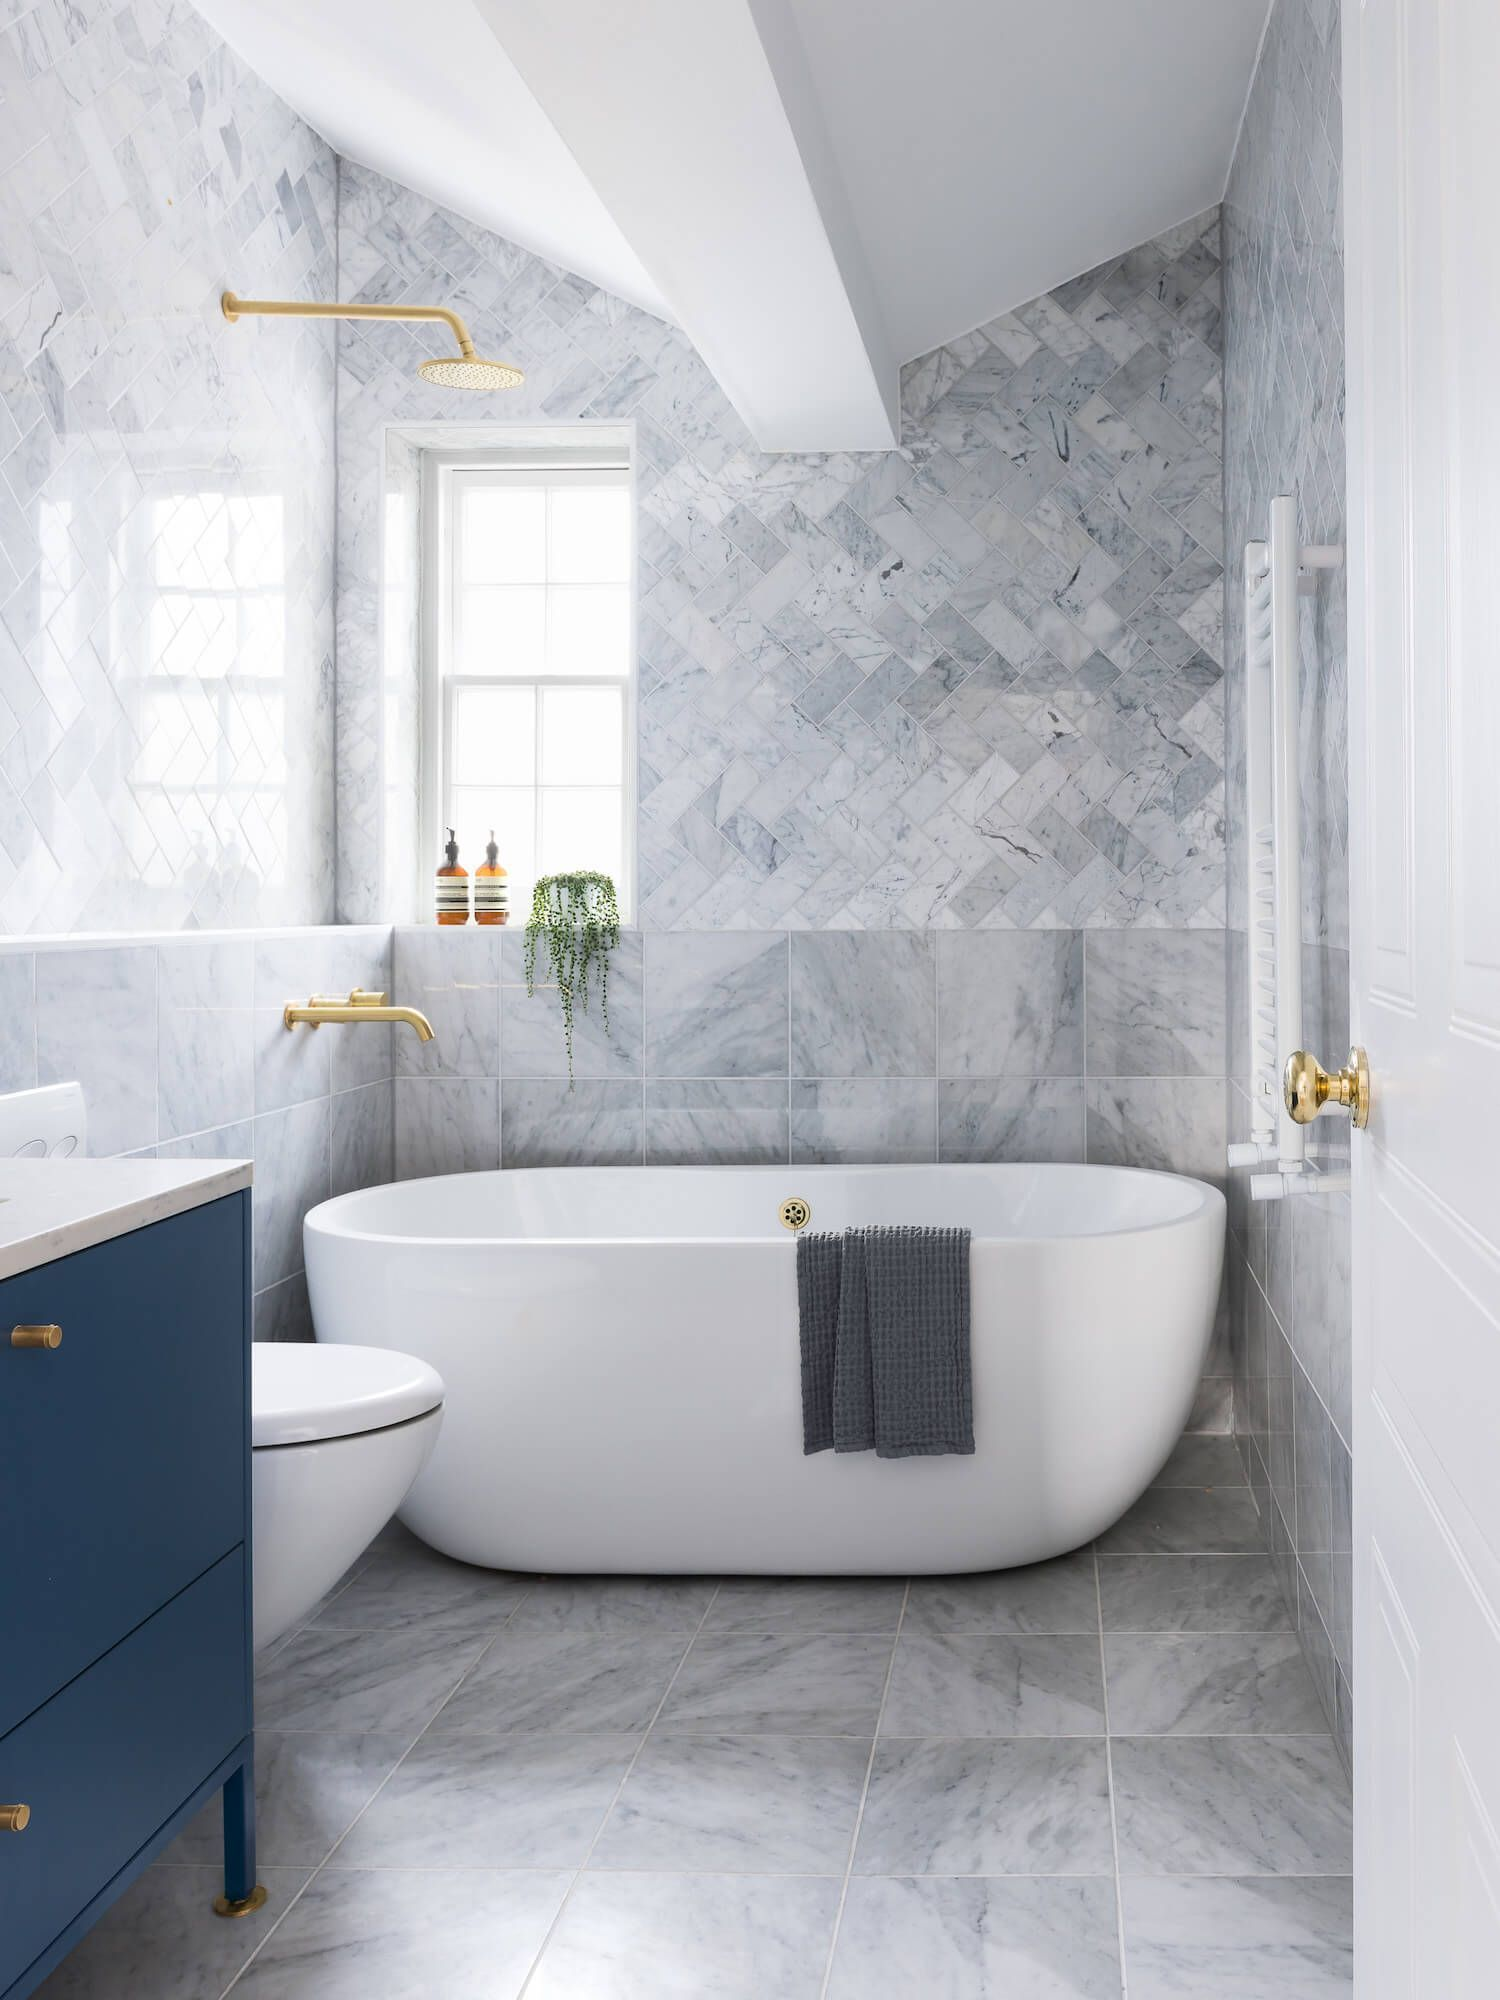 The Powder Room Is Narrow But It Feels More Spacious Because Of The Rows Of Mirrors Placed Luxury Bathroom Master Baths Top Bathroom Design Bathroom Interior